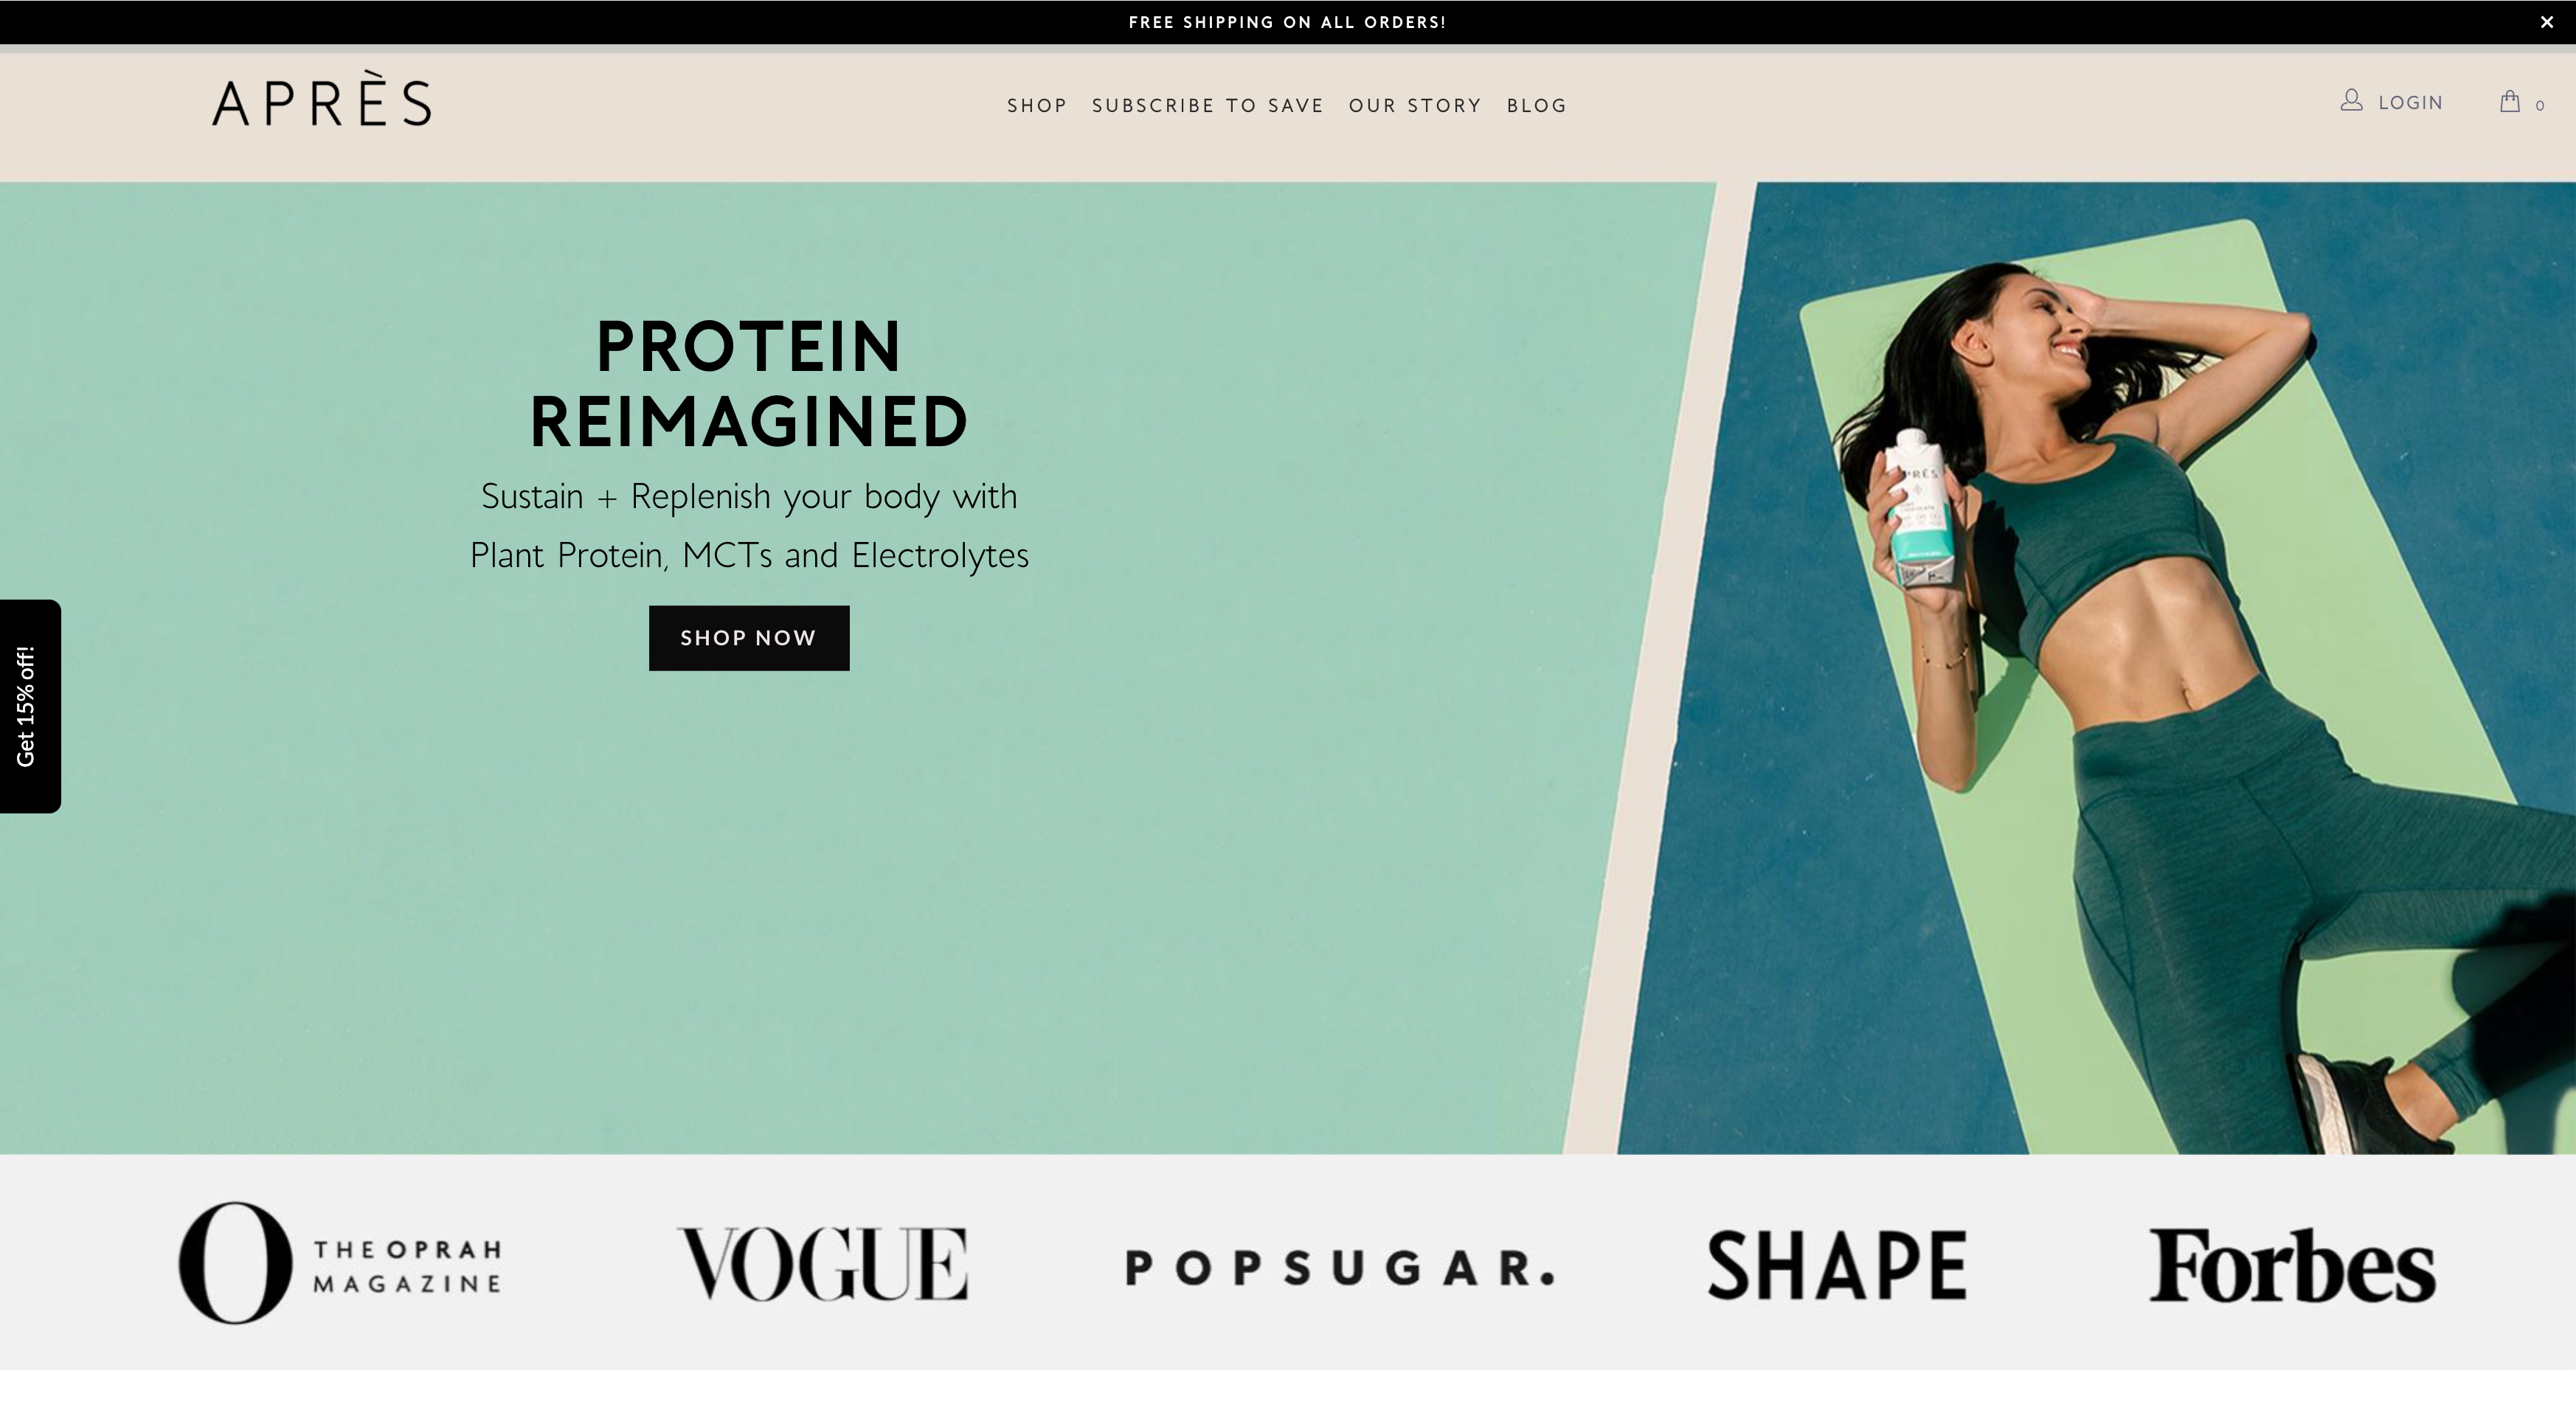 apres protein drink homepage